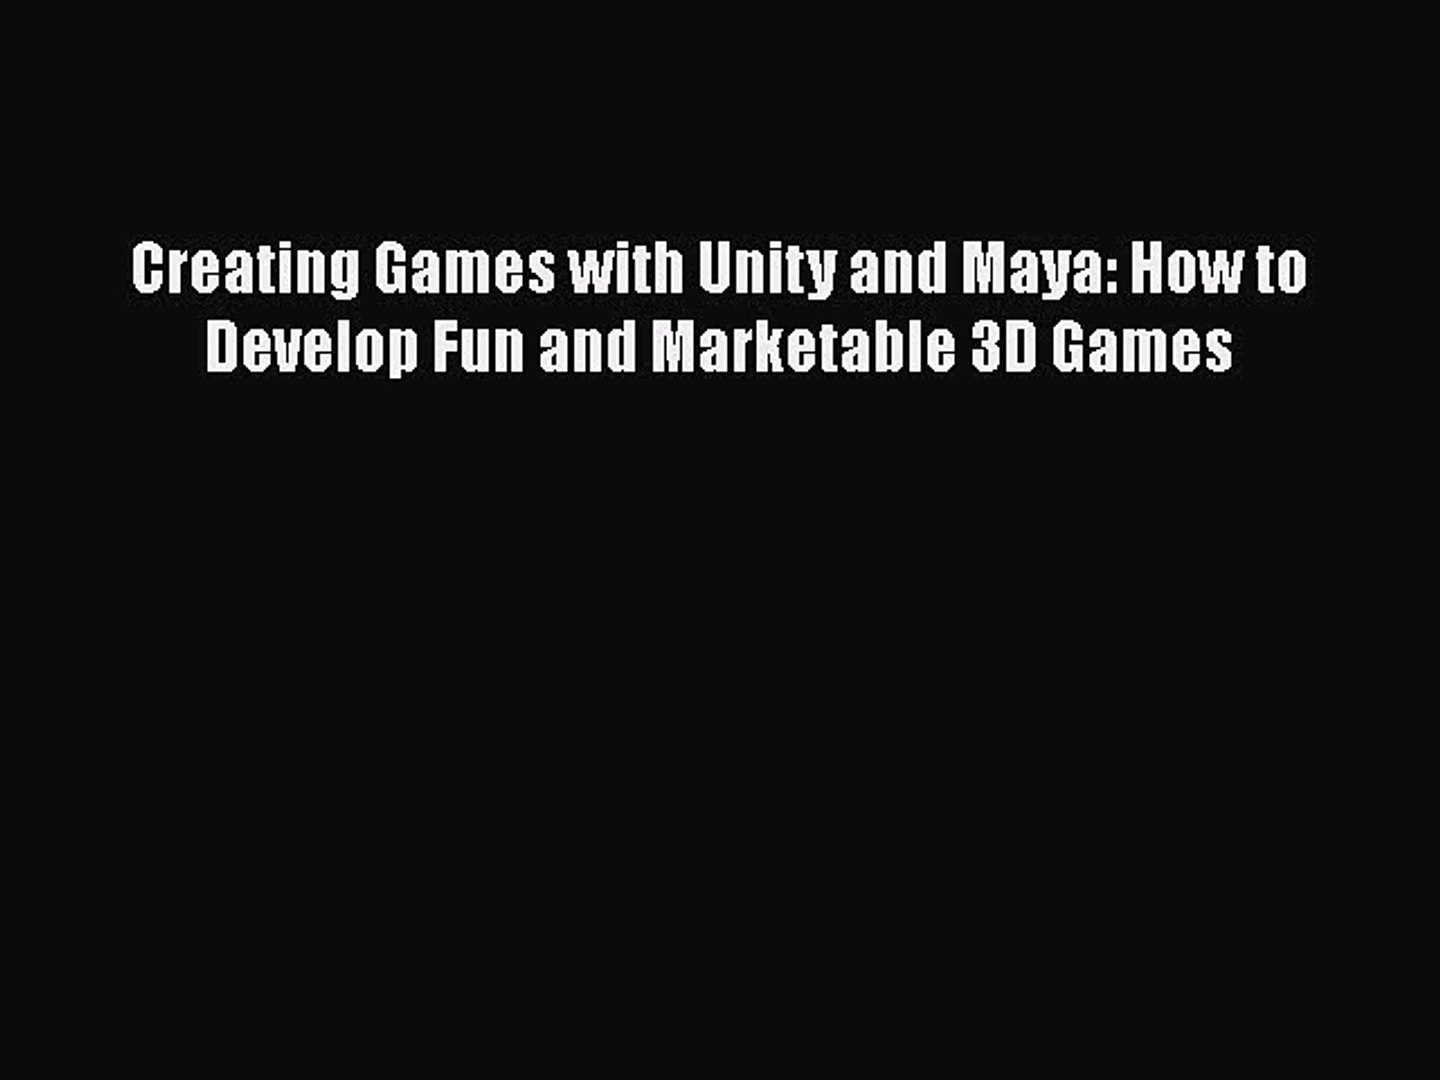 [PDF] Creating Games with Unity and Maya: How to Develop Fun and Marketable  3D Games [Download]